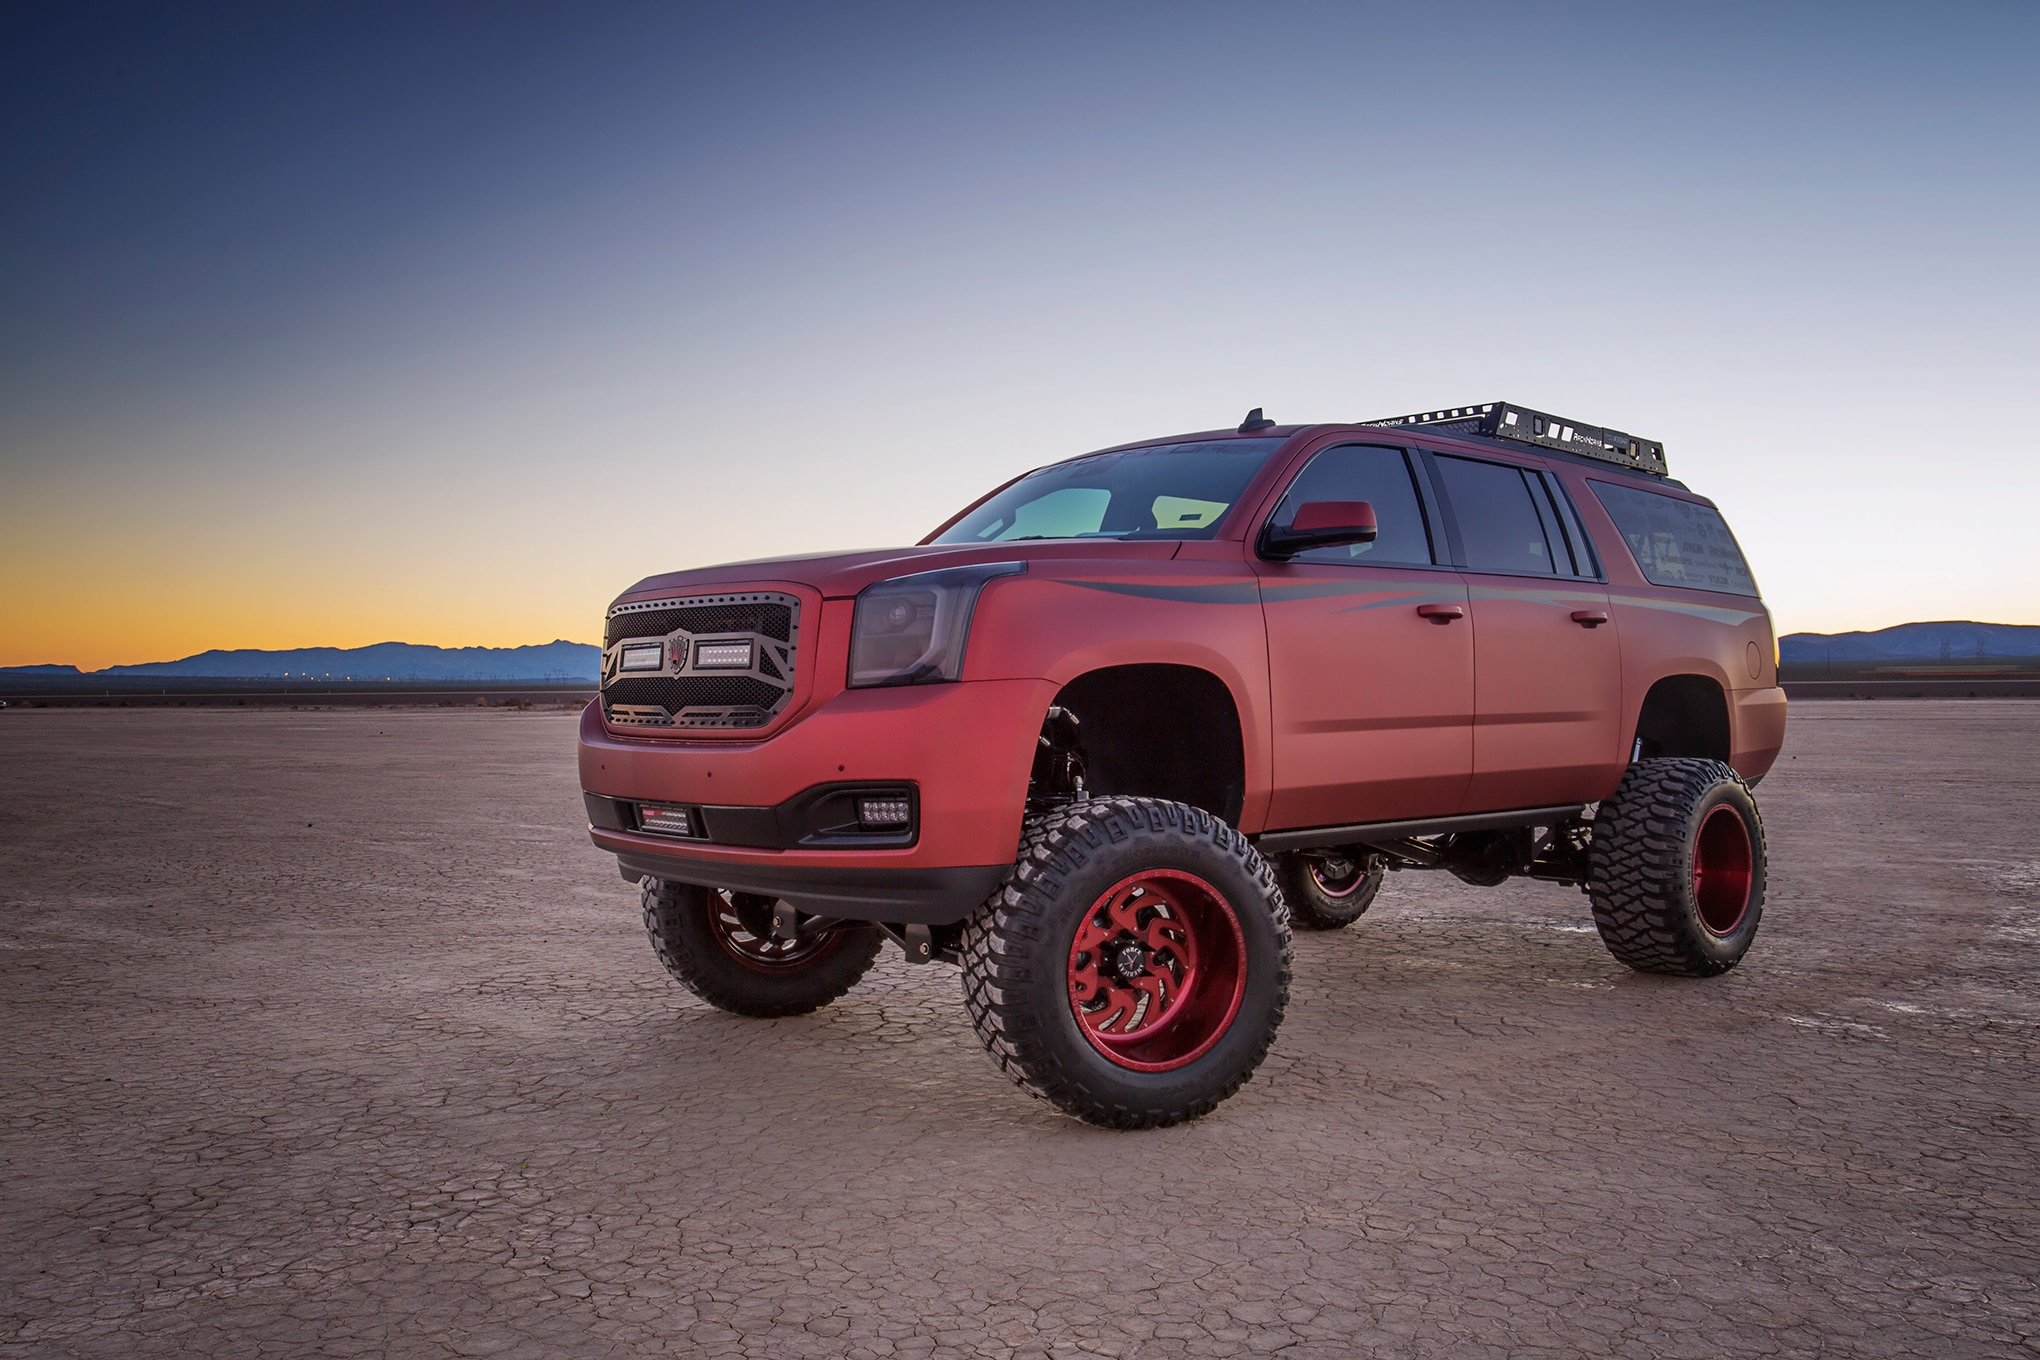 2015 Gmc Yukon Xl Little Red Wagon